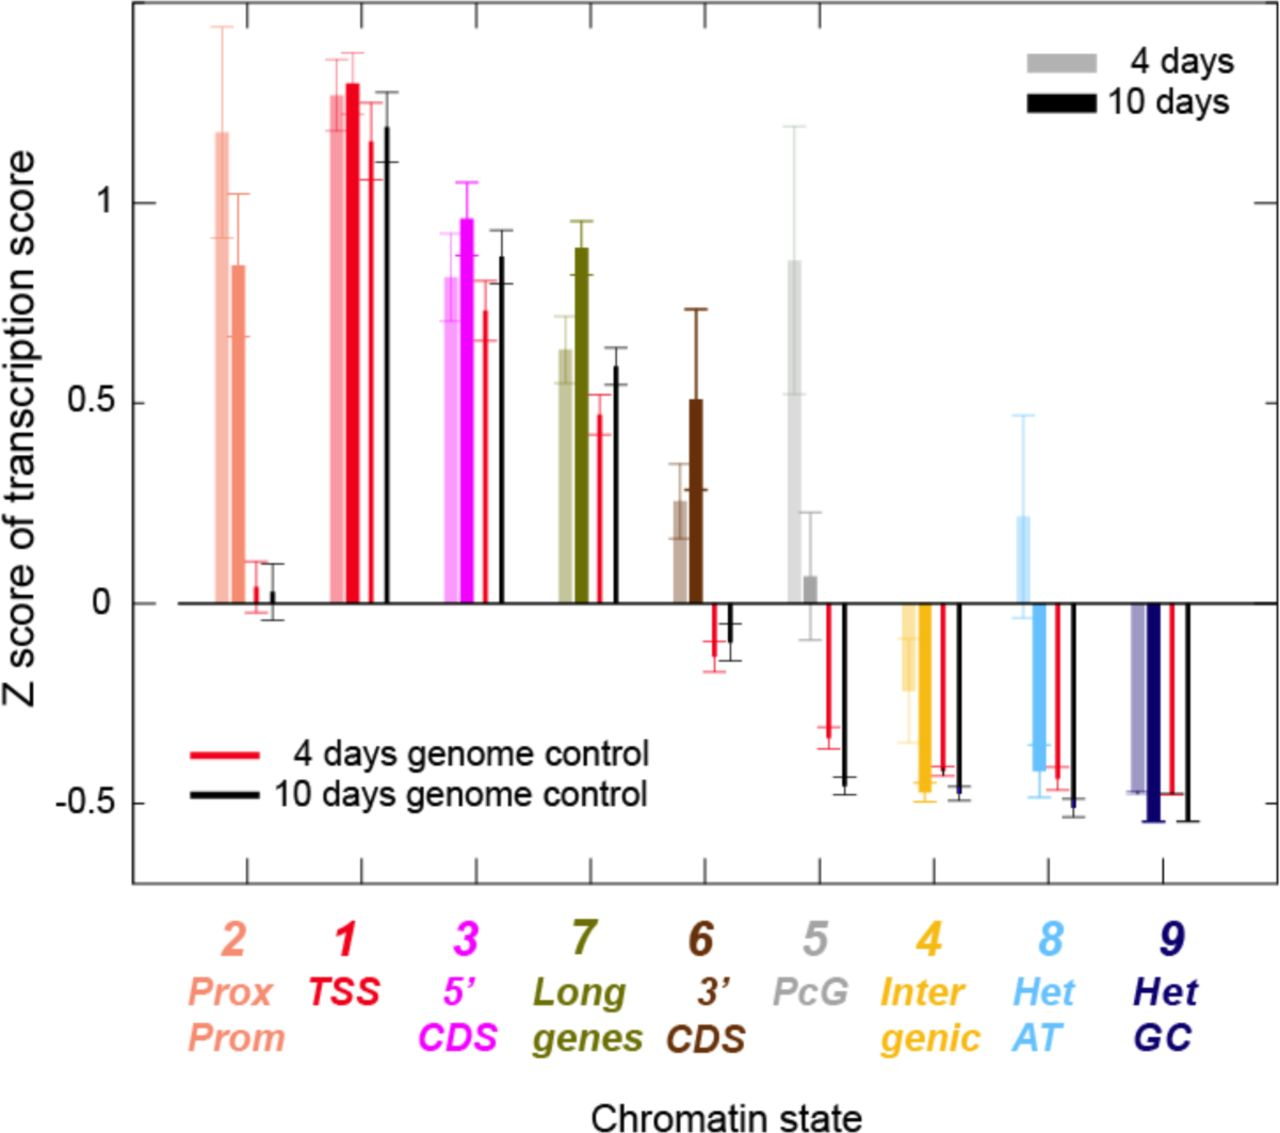 Differences in firing efficiency, chromatin and transcription